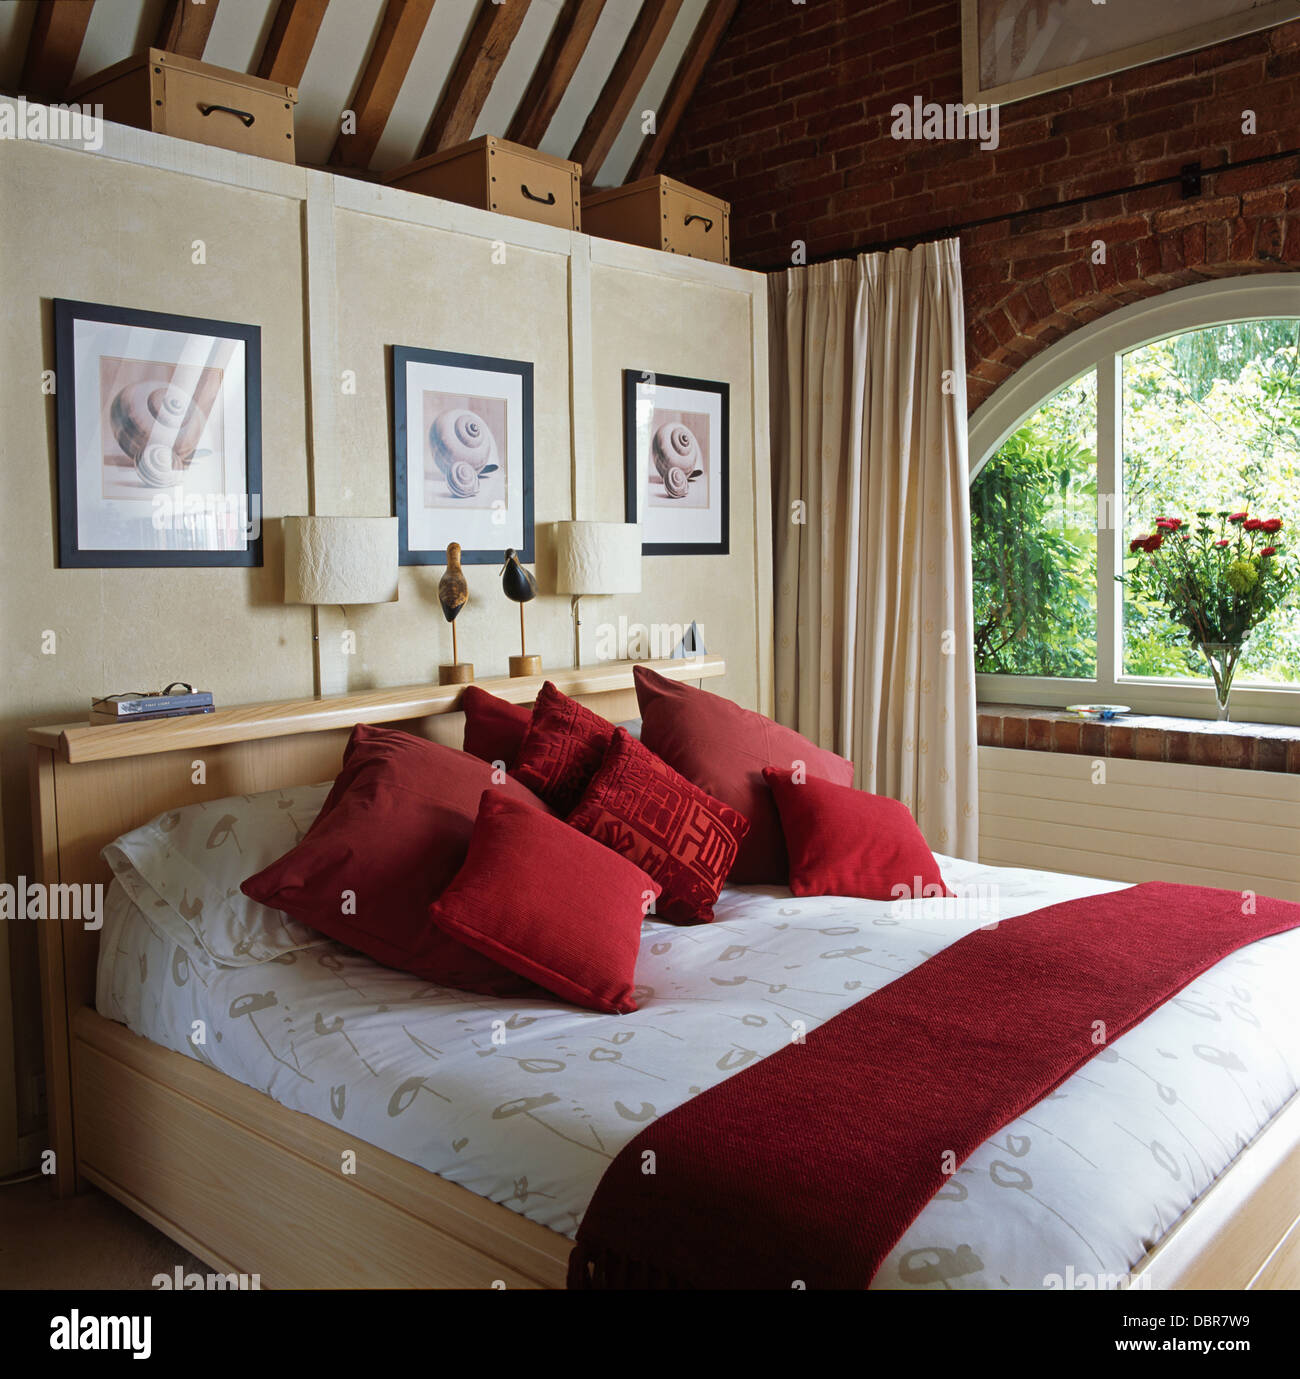 Red velvet curtains in bedroom - Pale Wood Bed With Red Velvet Cushions And Throw In Country Bedroom With Cream Curtains On The Window